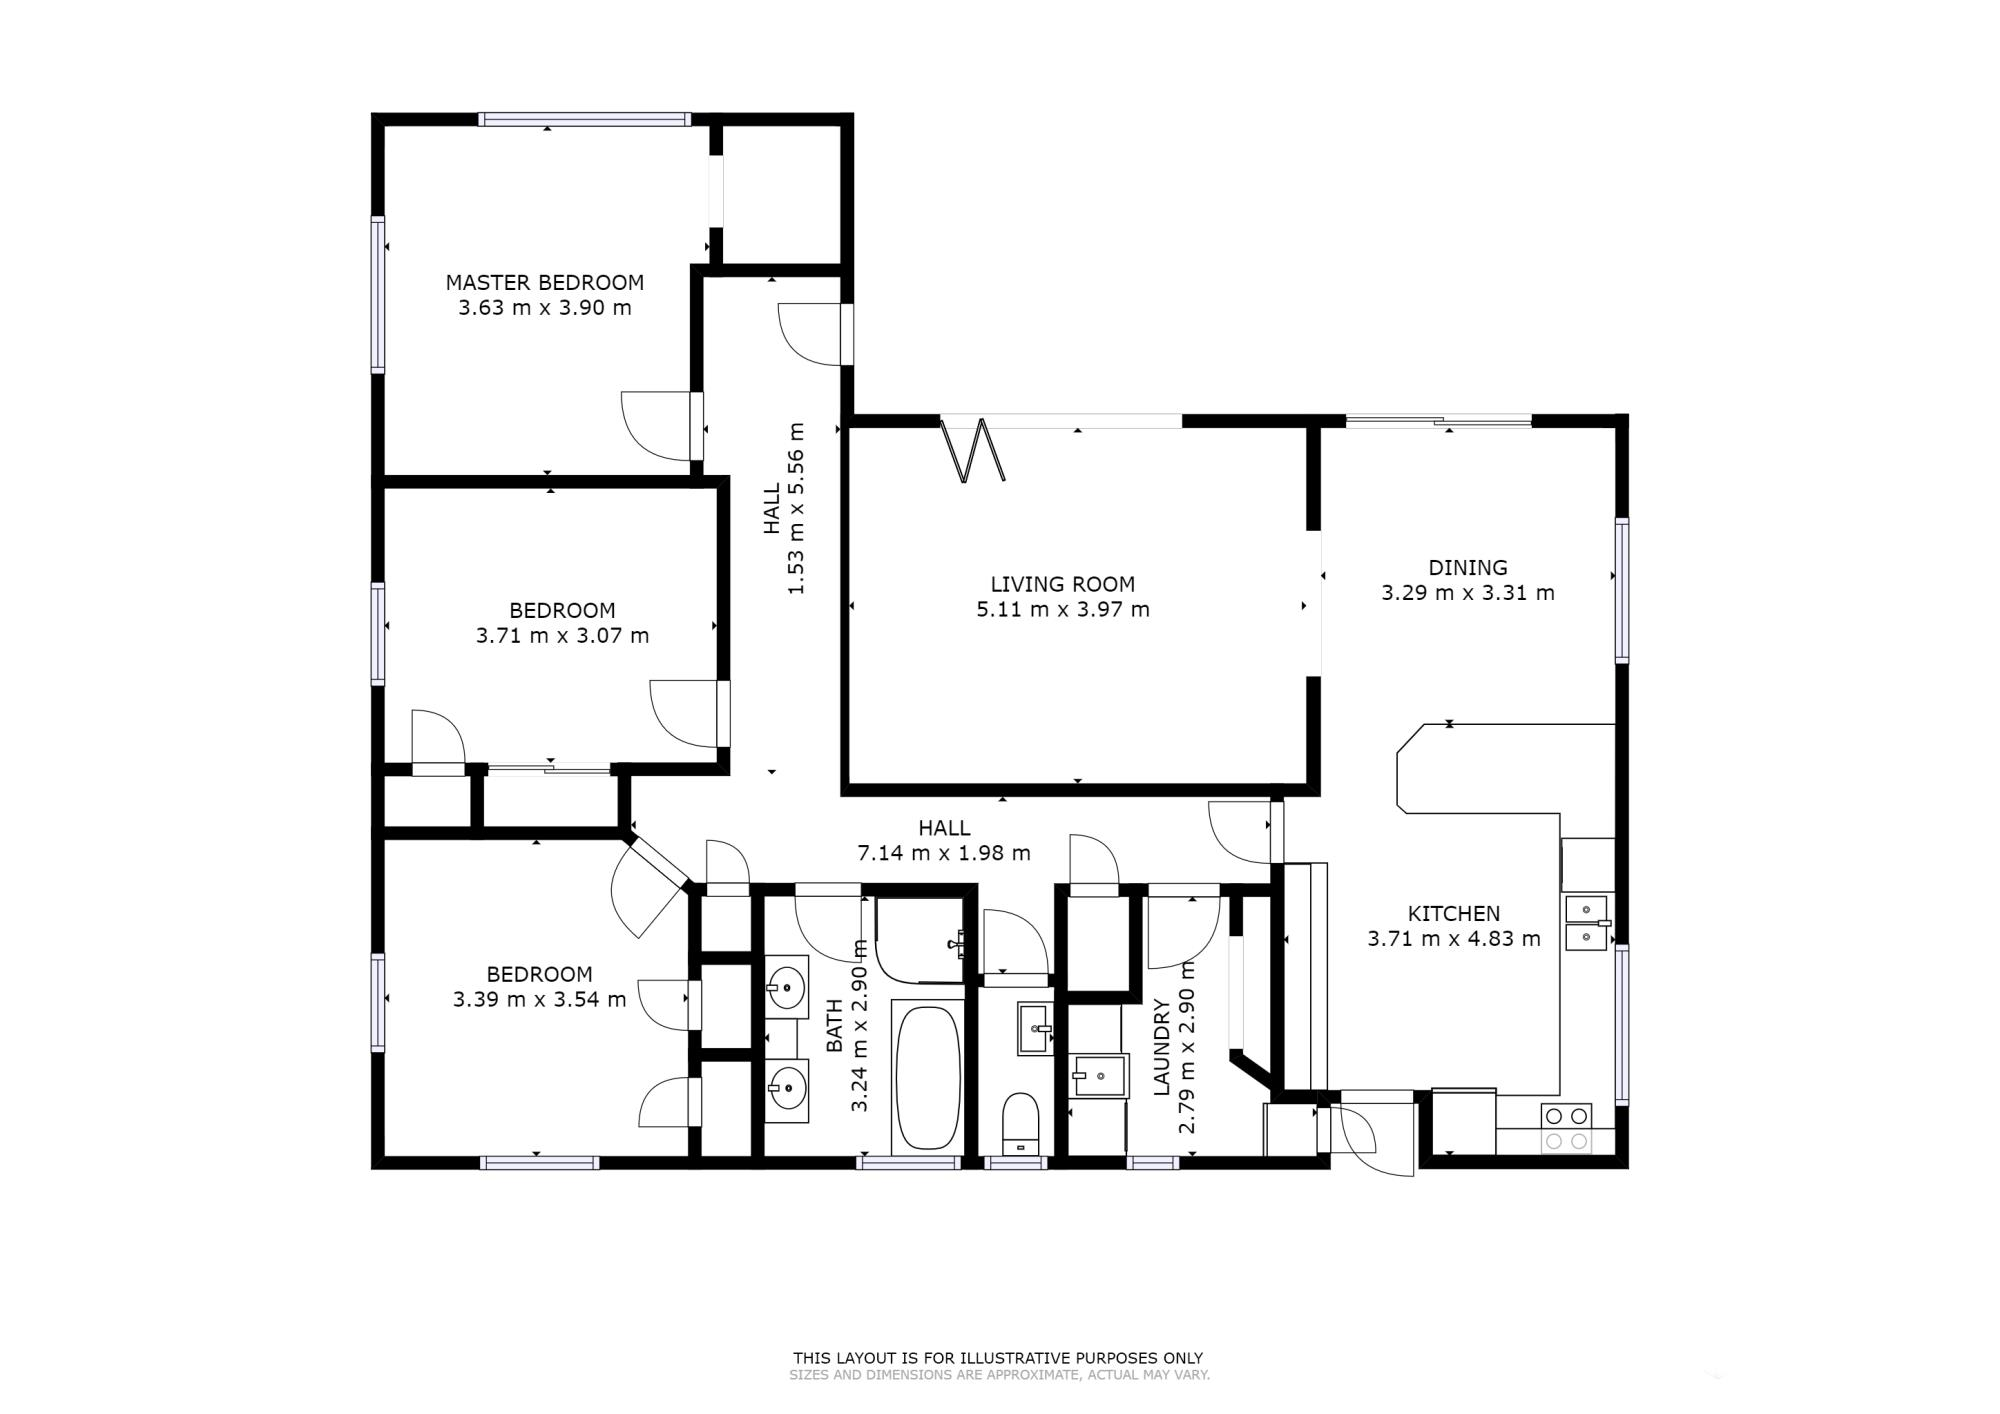 89 Maunu Road Horahoraproperty floorplan image